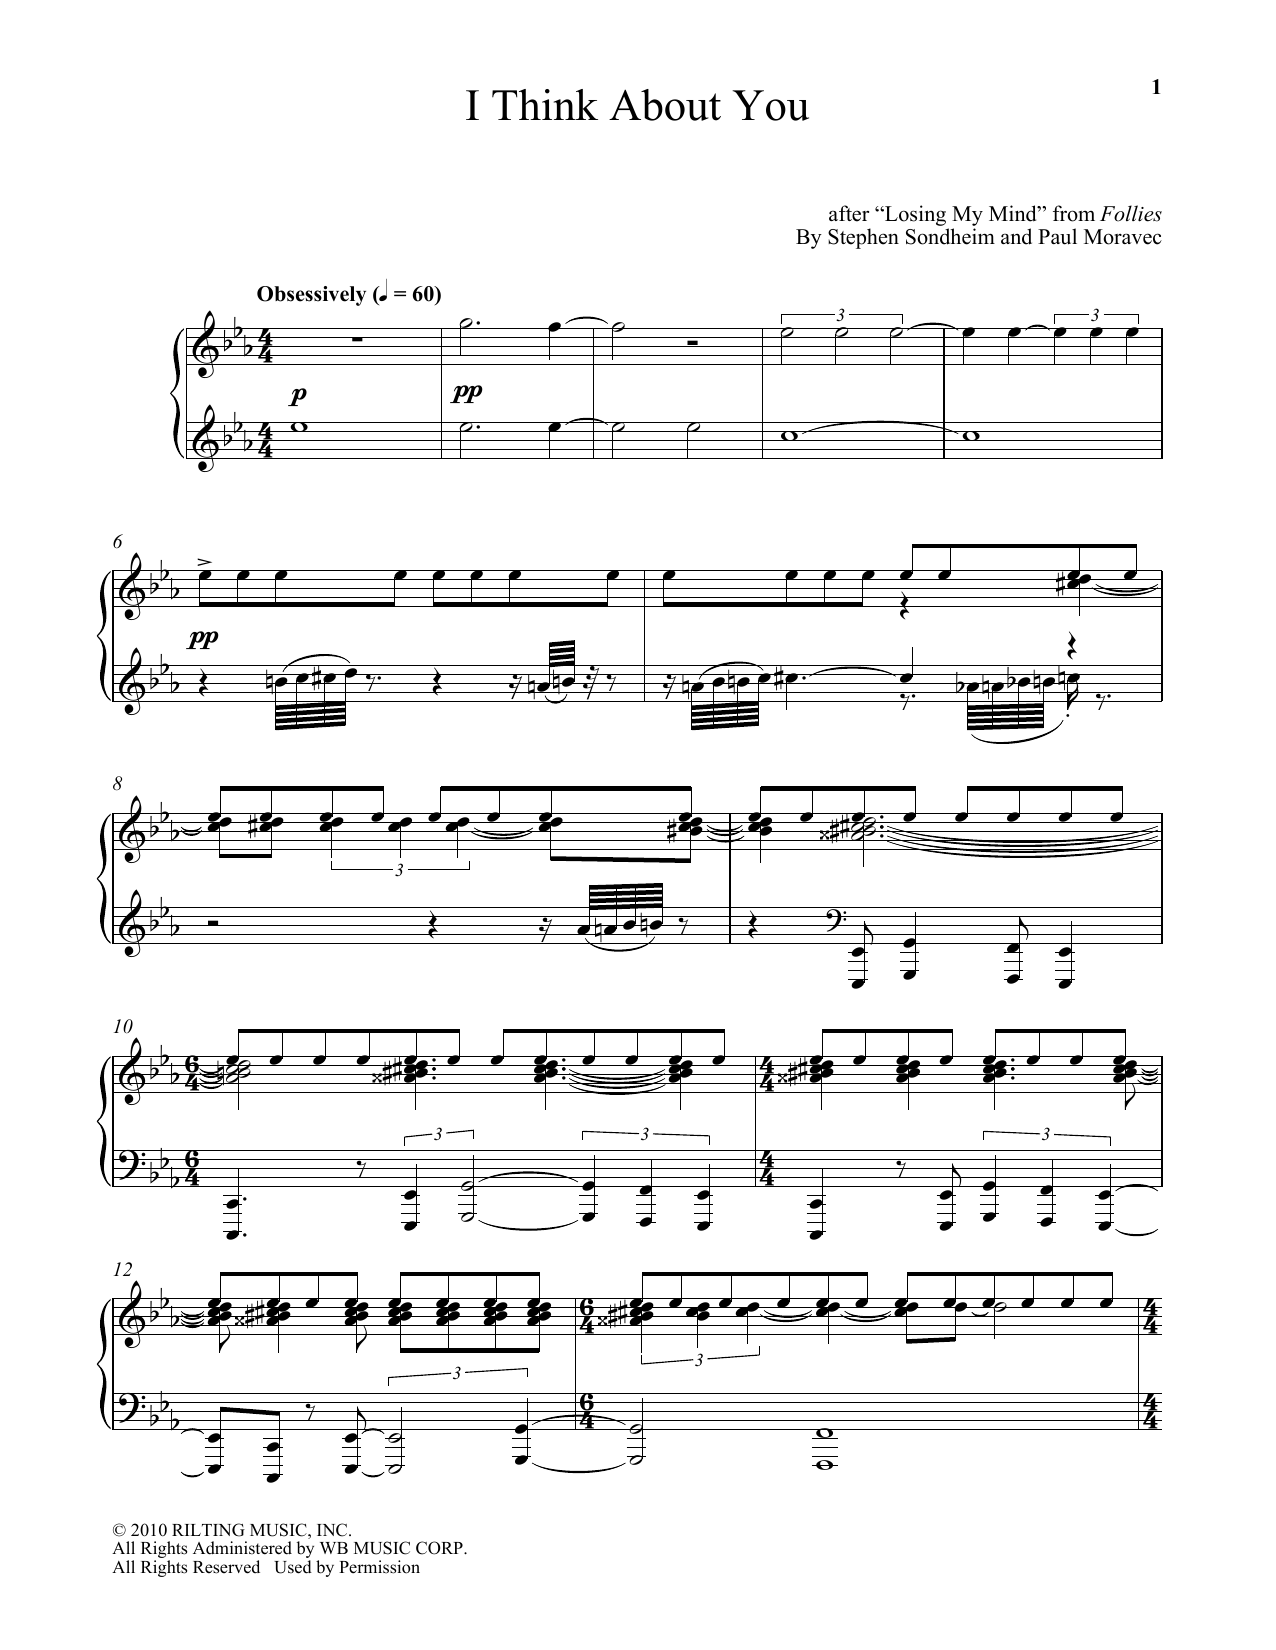 Download Paul Moravec 'I Think About You' Digital Sheet Music Notes & Chords and start playing in minutes